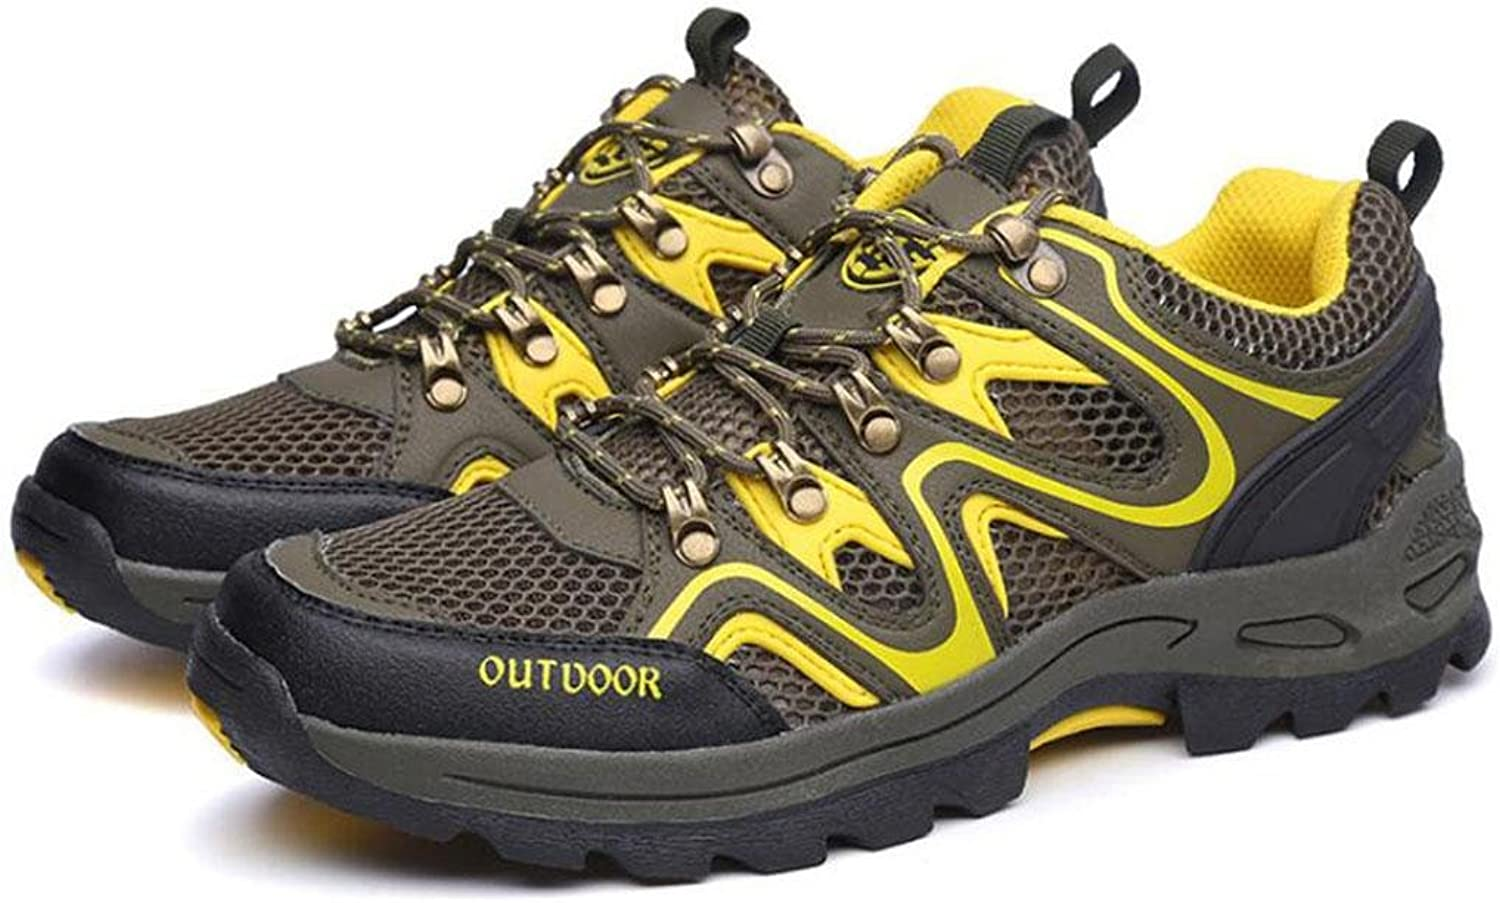 Z&HX sportsOutdoor leisure hiking shoes single layer of cloth breathable anti - slip non - slip men and women